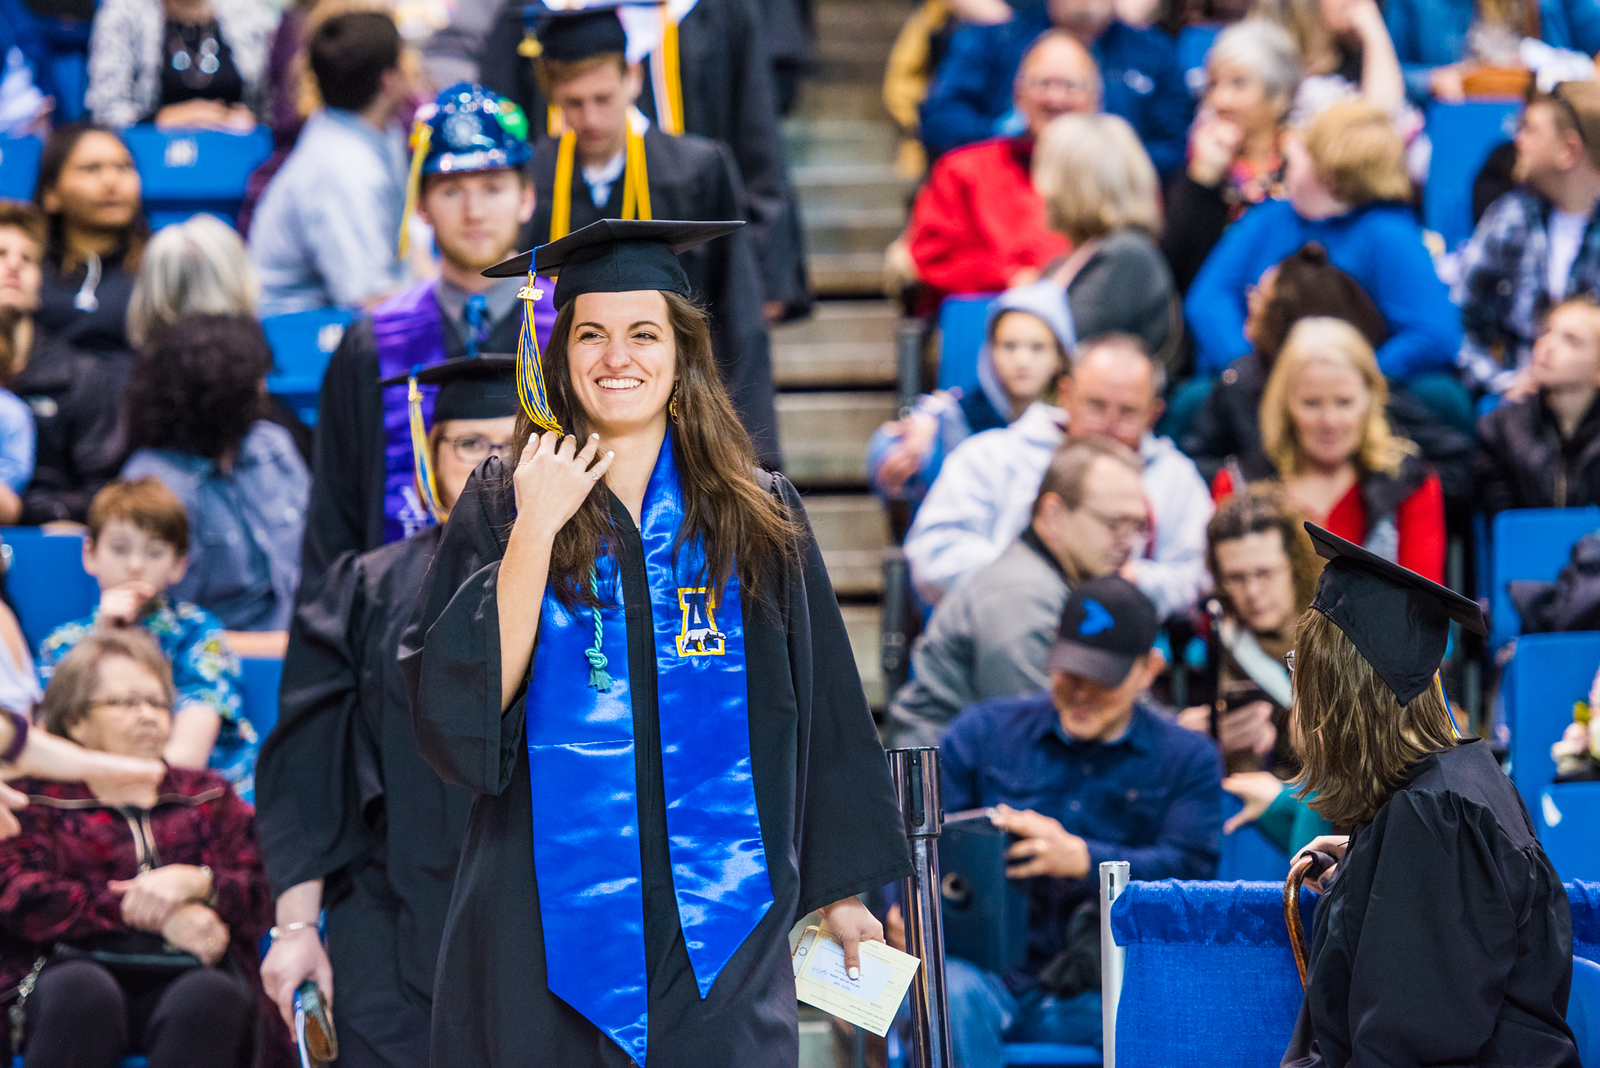 Tatjana Spaic, who earned a bachelor's degree in geological engineering, walks onto the floor as UAF's commencement ceremony begins in the Carlson Center on May 5, 2018.